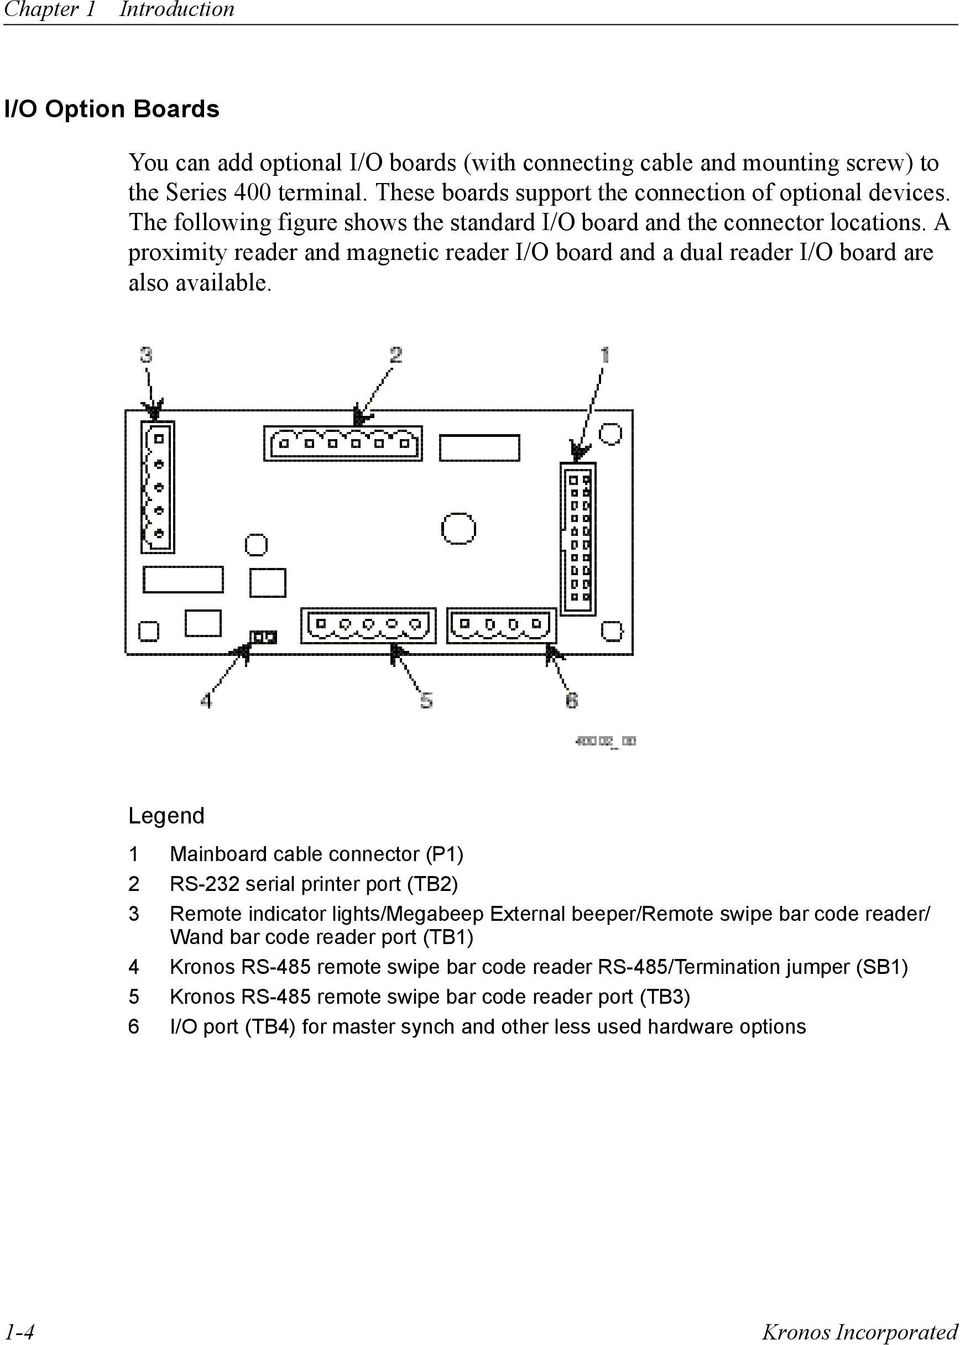 hight resolution of  fan only support manual a proximity reader and magnetic reader i o board and a dual reader i